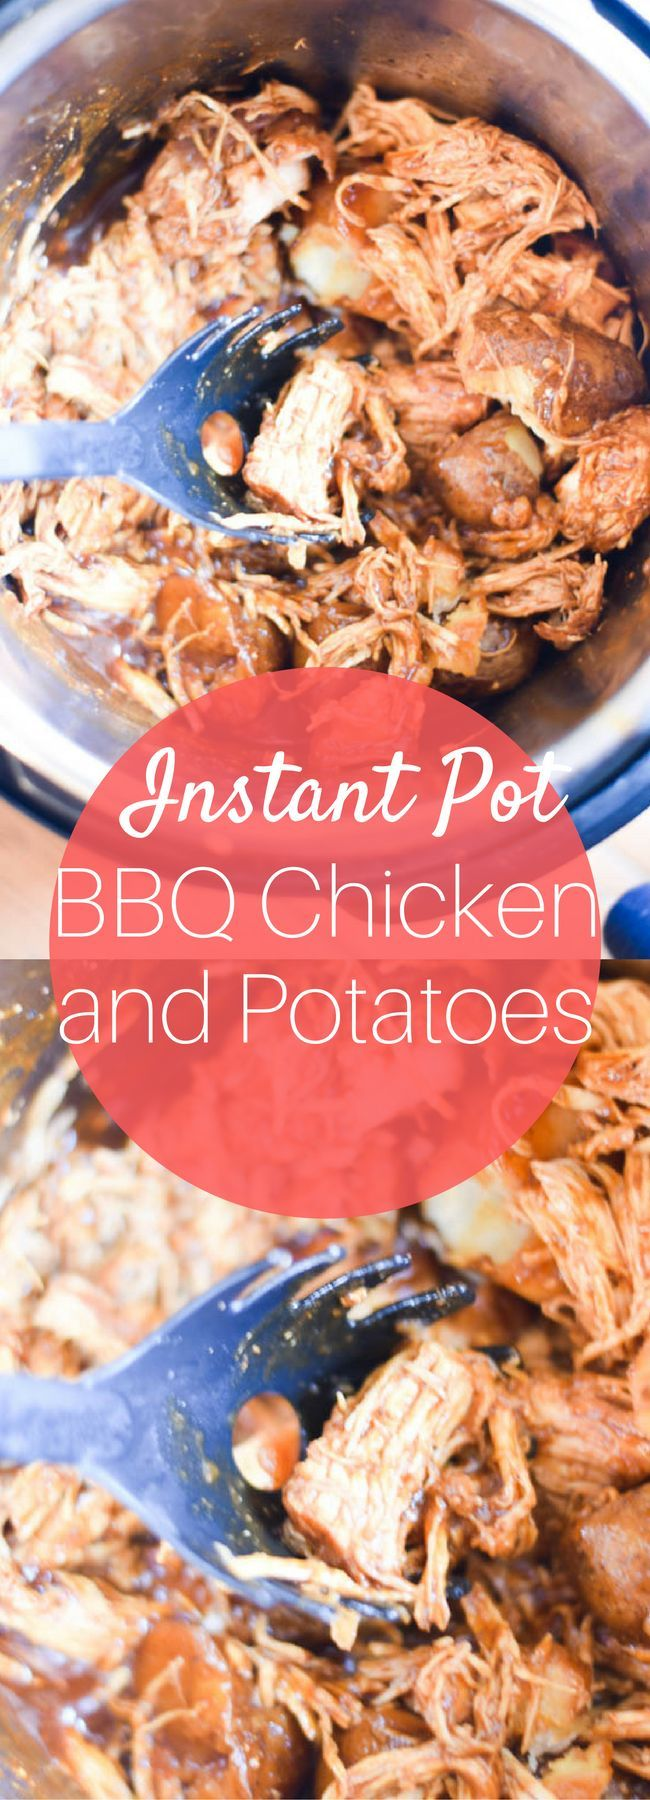 The Best Instant Pot BBQ Chicken with Potatoes